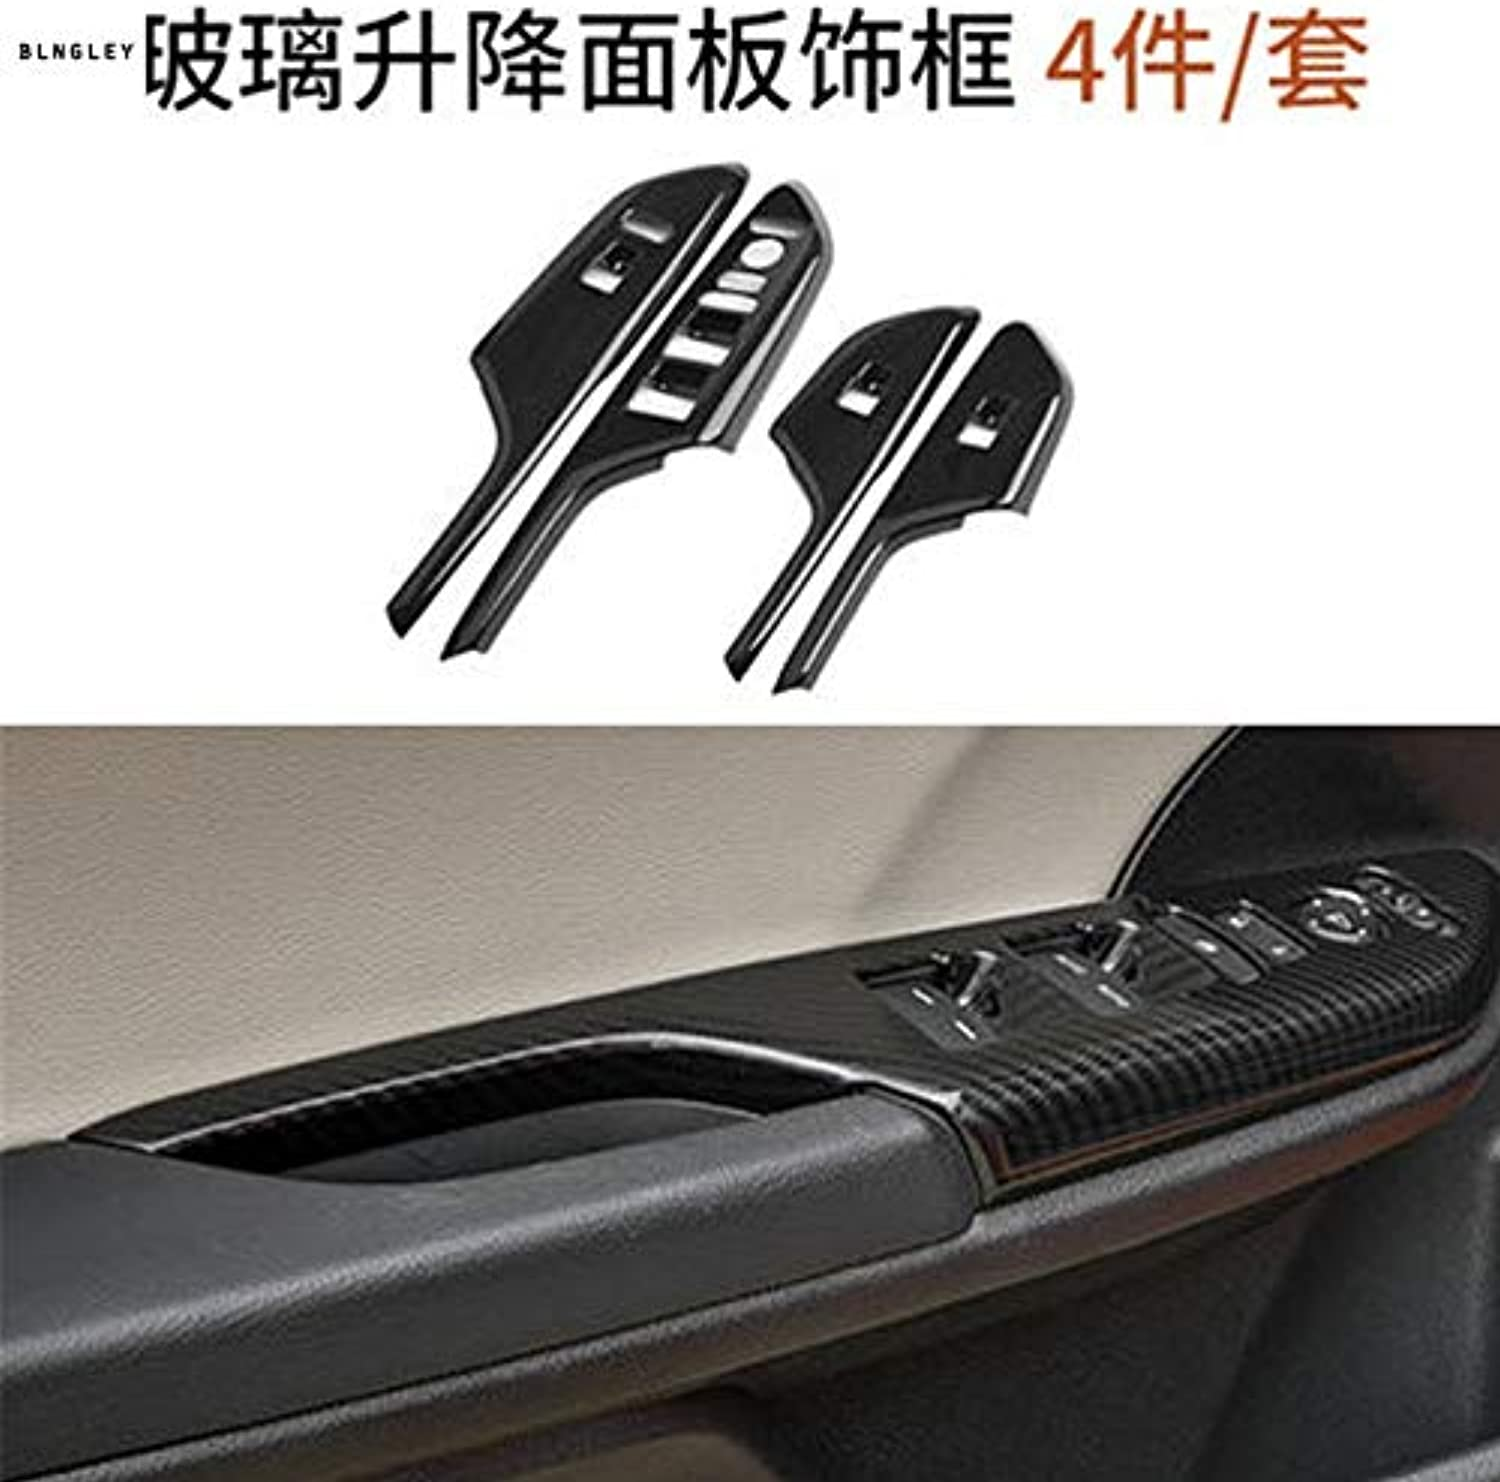 4pcs lot ABS Carbon Fiber Grain car Window Lift Panel Decoration Cover for 20162018 Honda Civic MK10